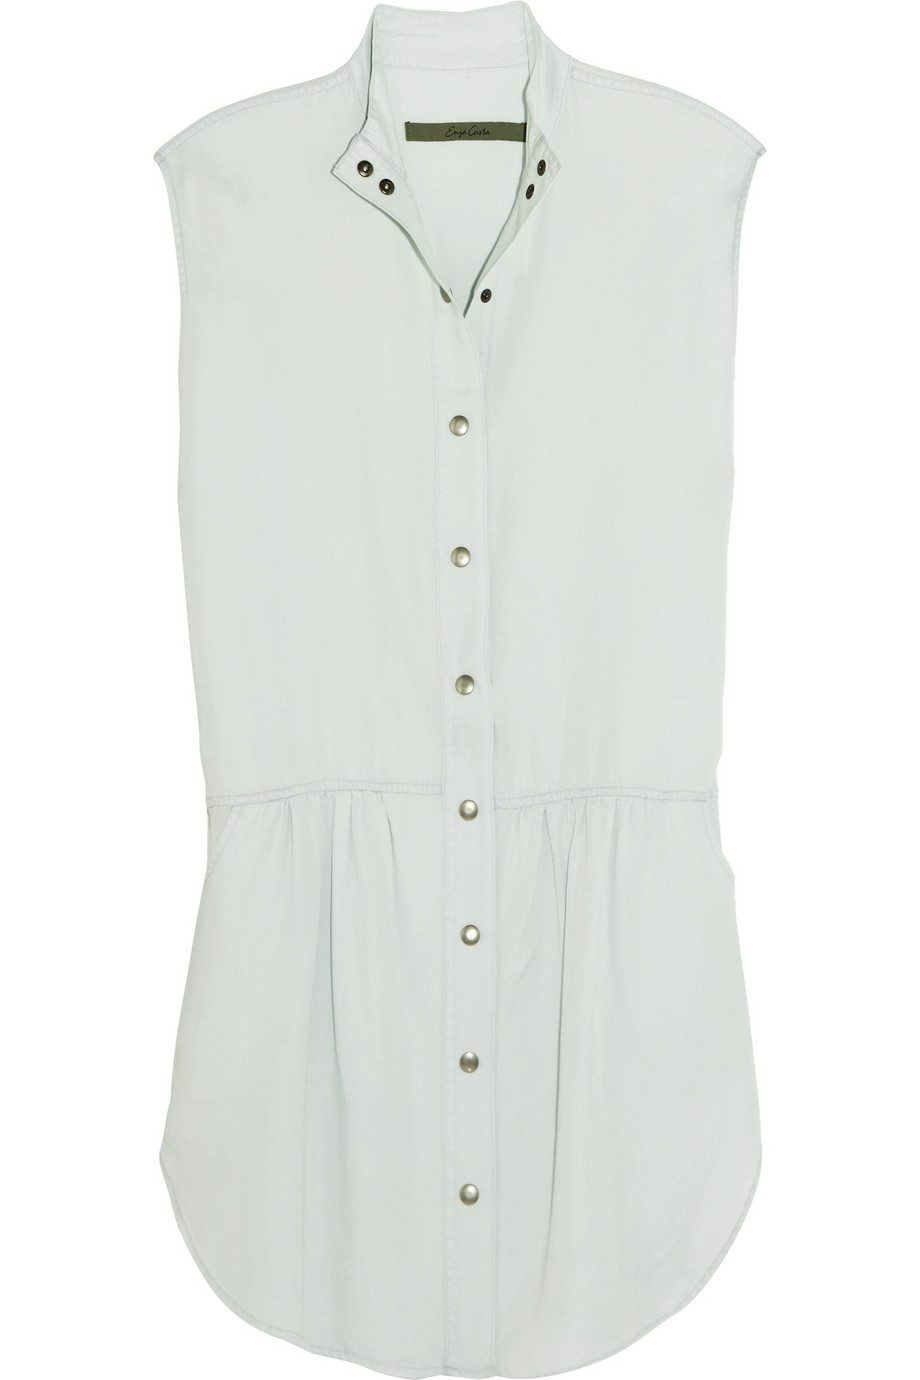 ENZA COSTA Brushed-jersey shirt dress – 60% at THE OUTNET.COM